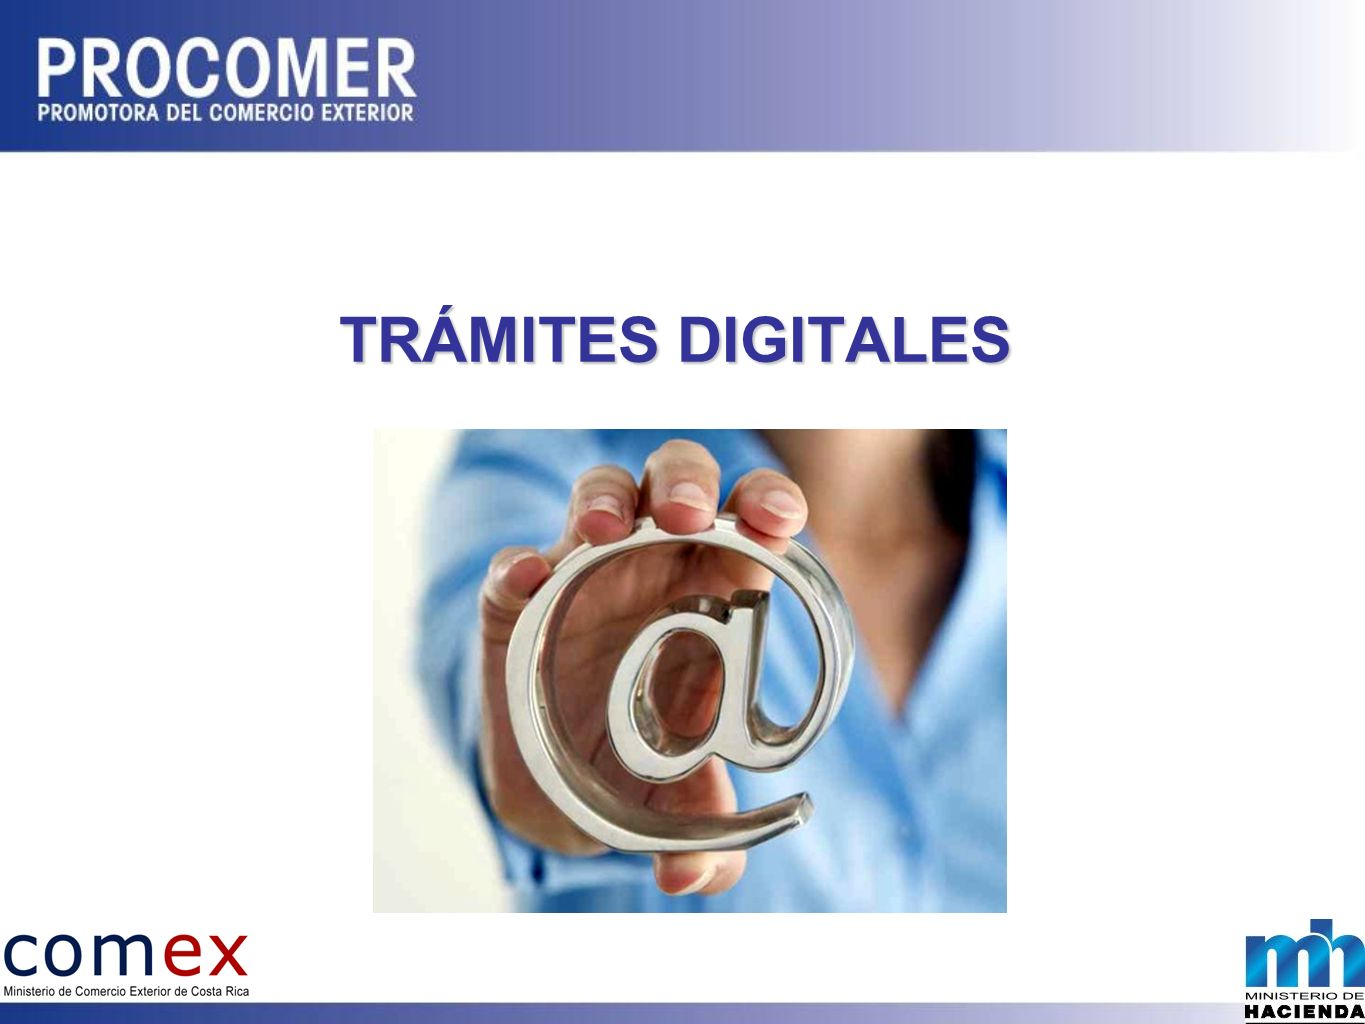 TRÁMITES DIGITALES GOOD MORNING, I'M THE OPERATIONS MANAGER ASSITANT, MY NAME IS ANDREA CÉSPEDES.